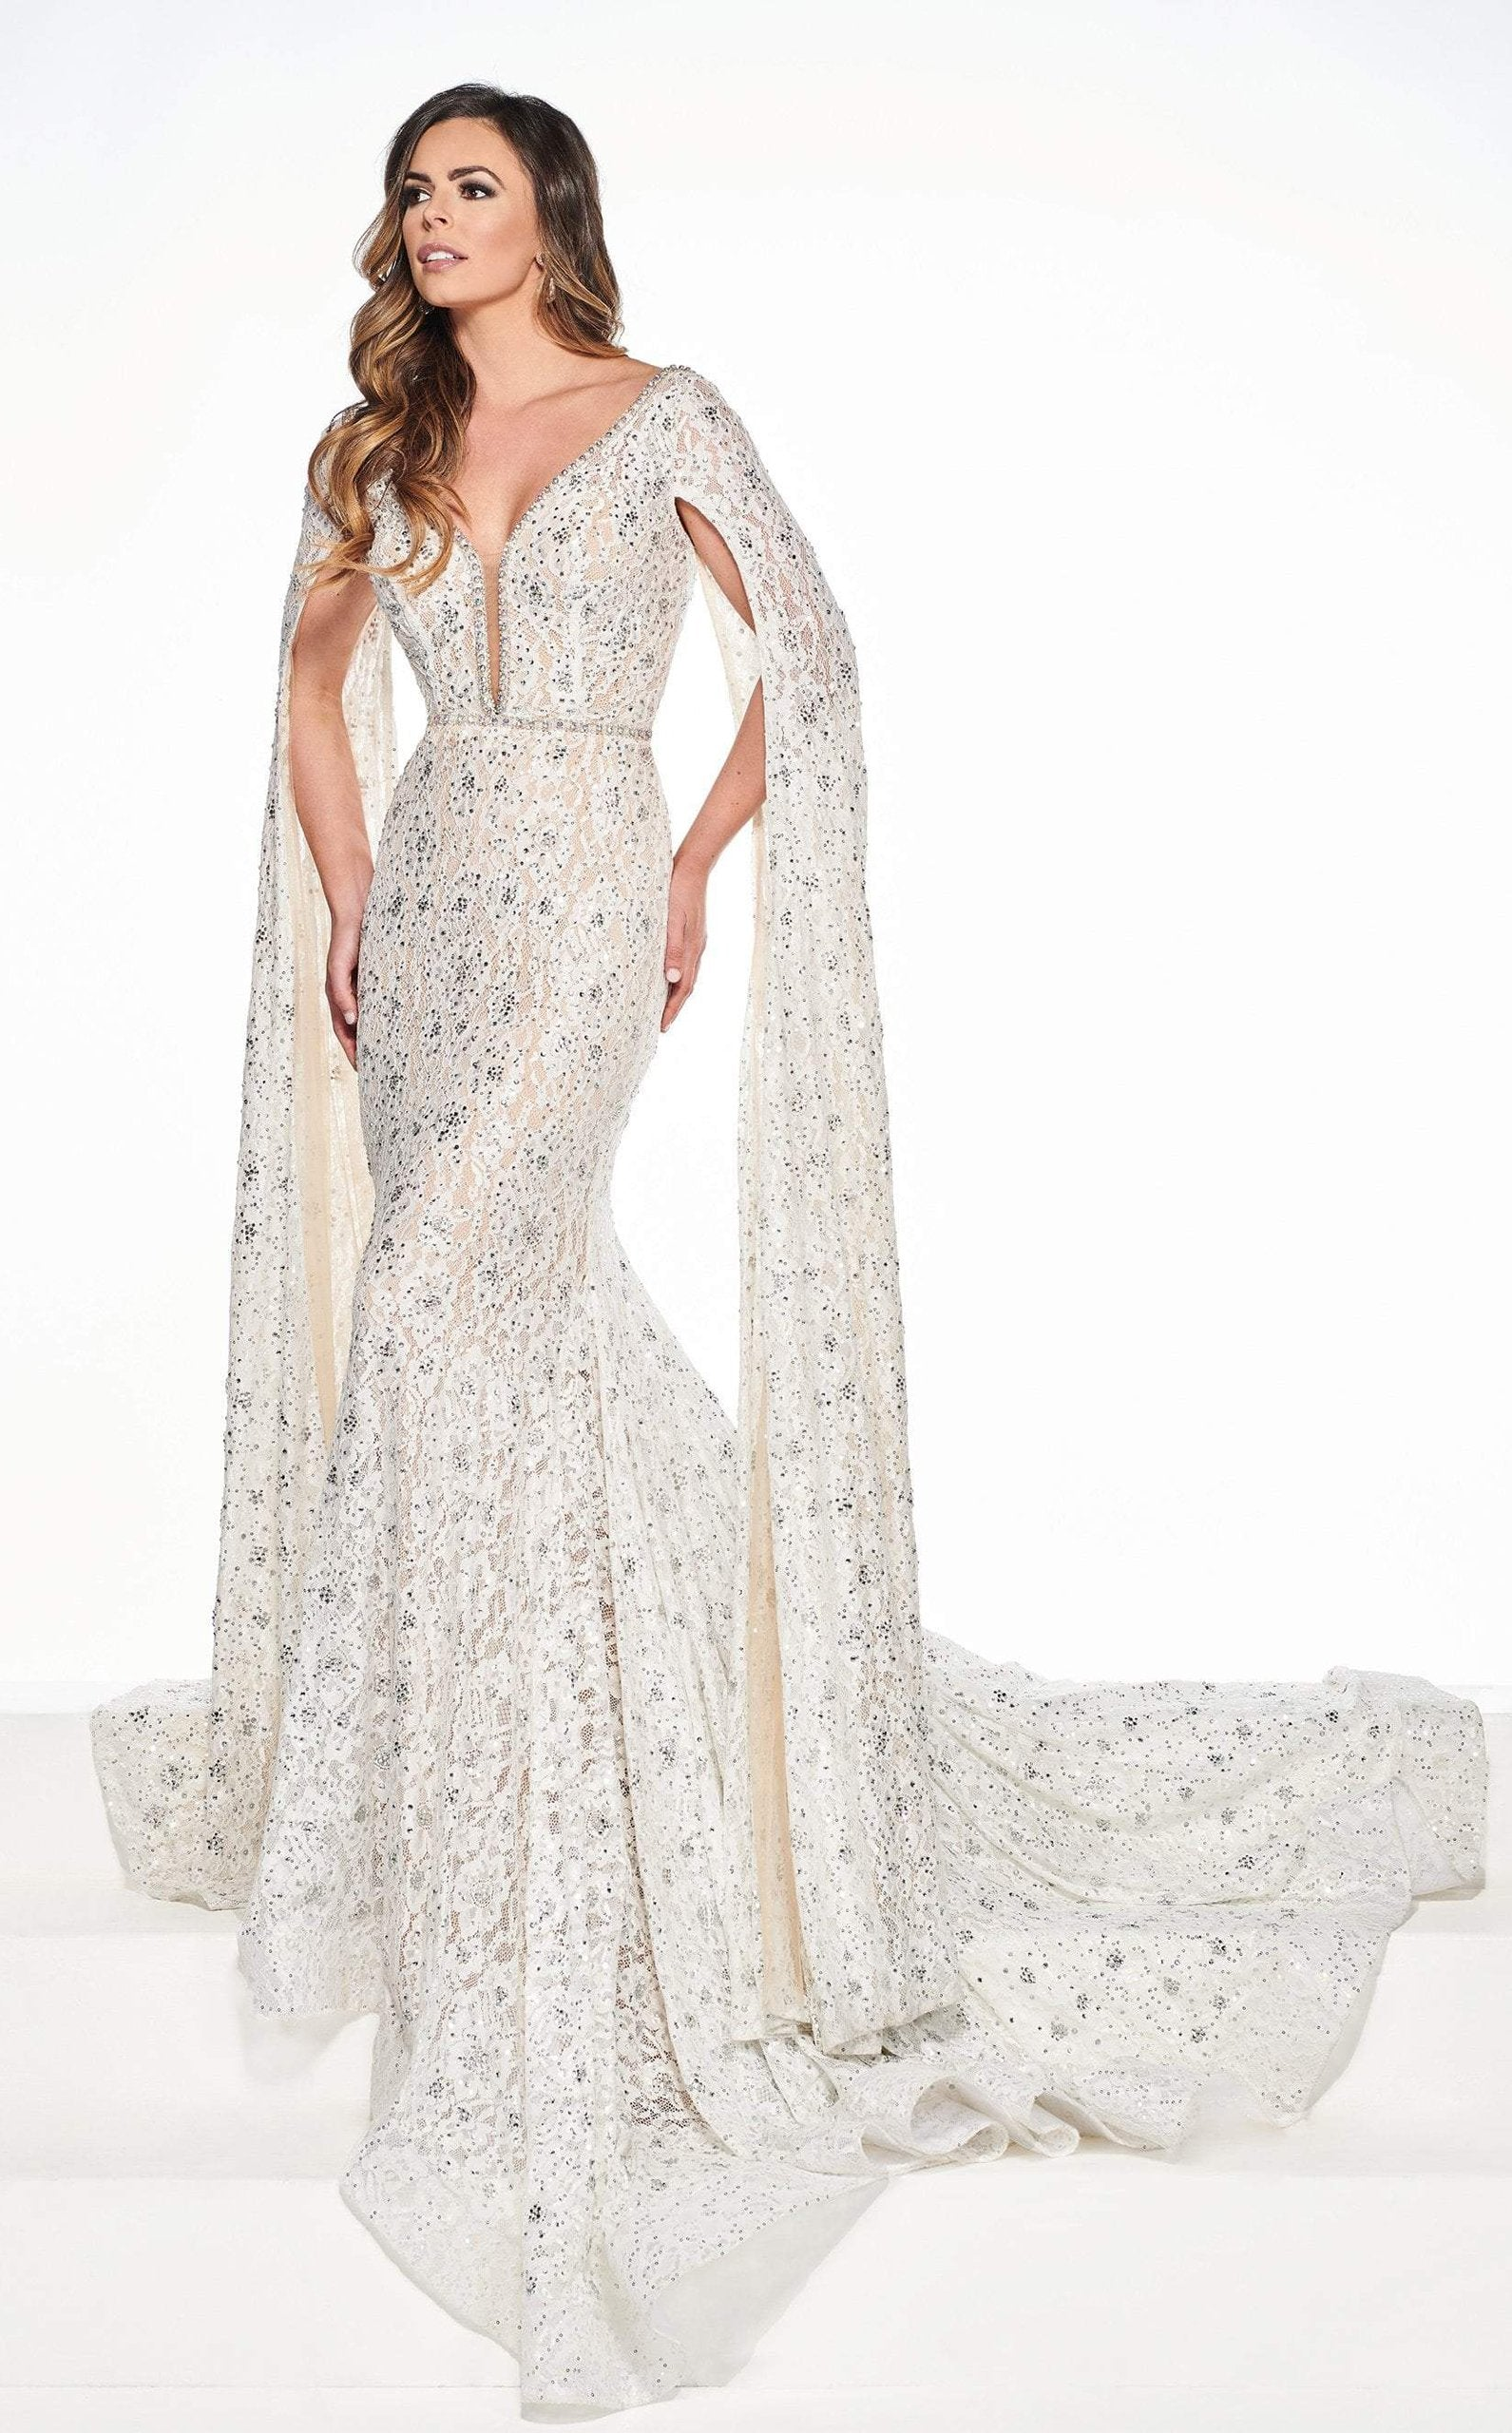 Rachel Allan Primadonna - 5081 Lace Deep V-neck Mermaid Dress In White and Neutral